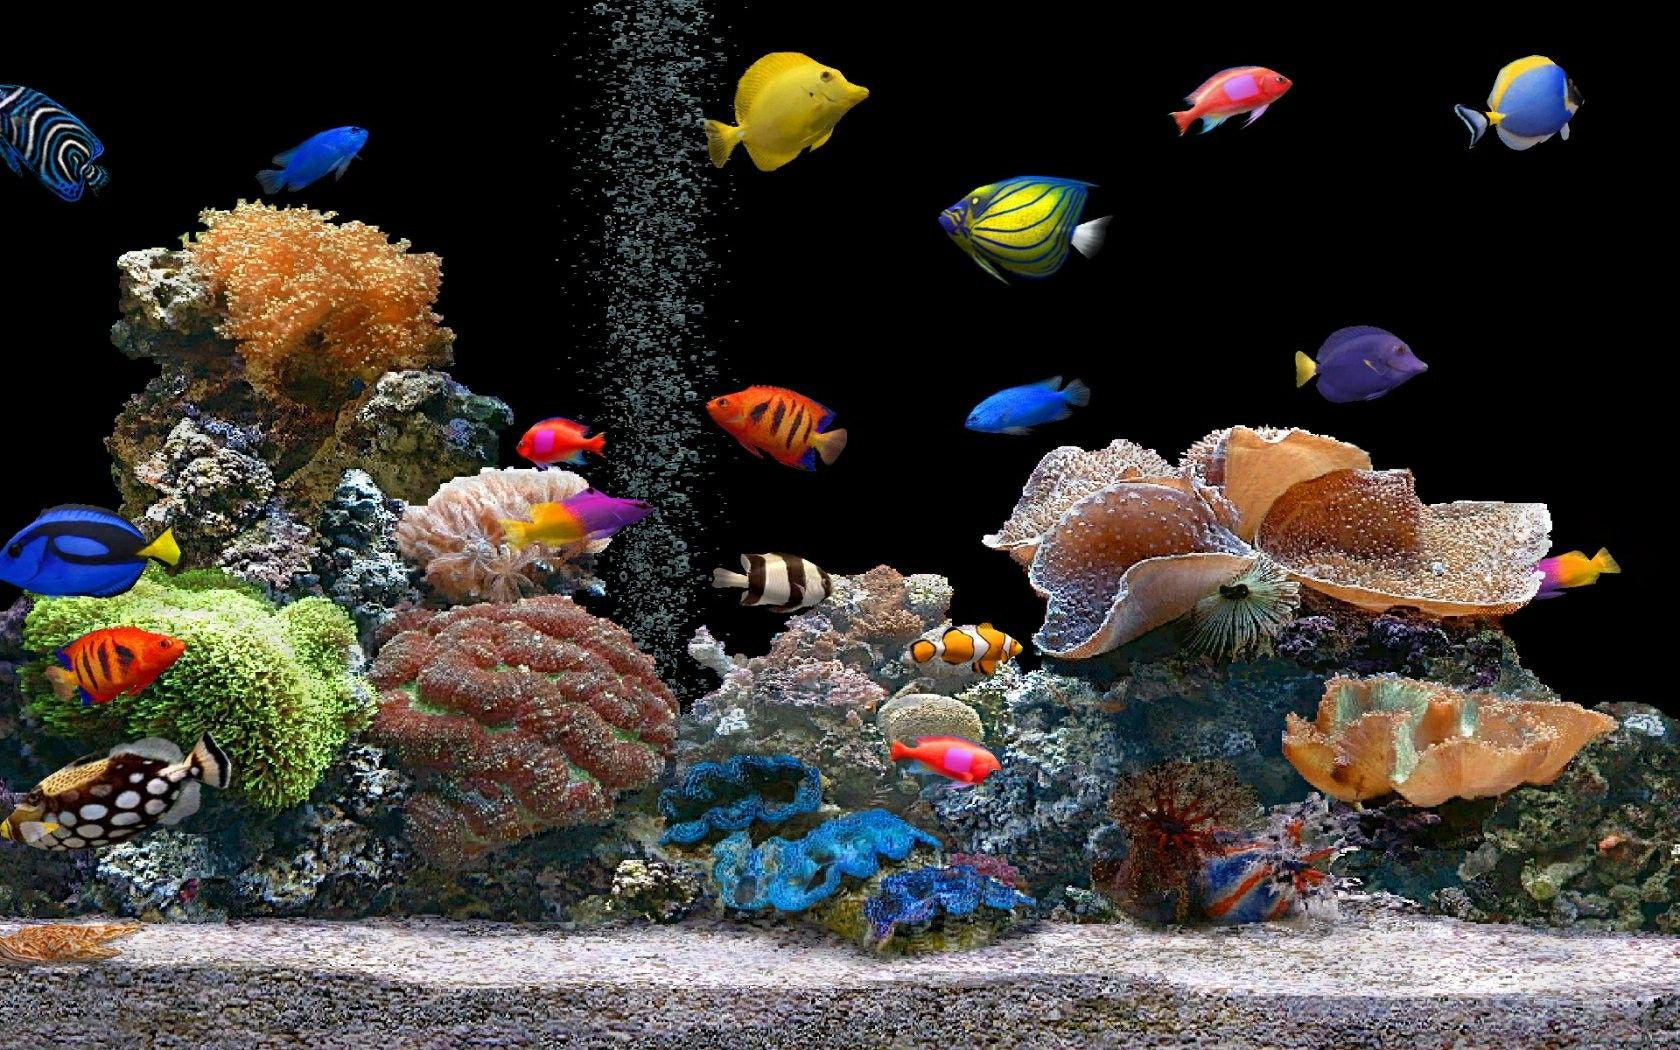 Download Live Hd Wallpaper Fish Aquarium 3d Desktop Aquarium 3d